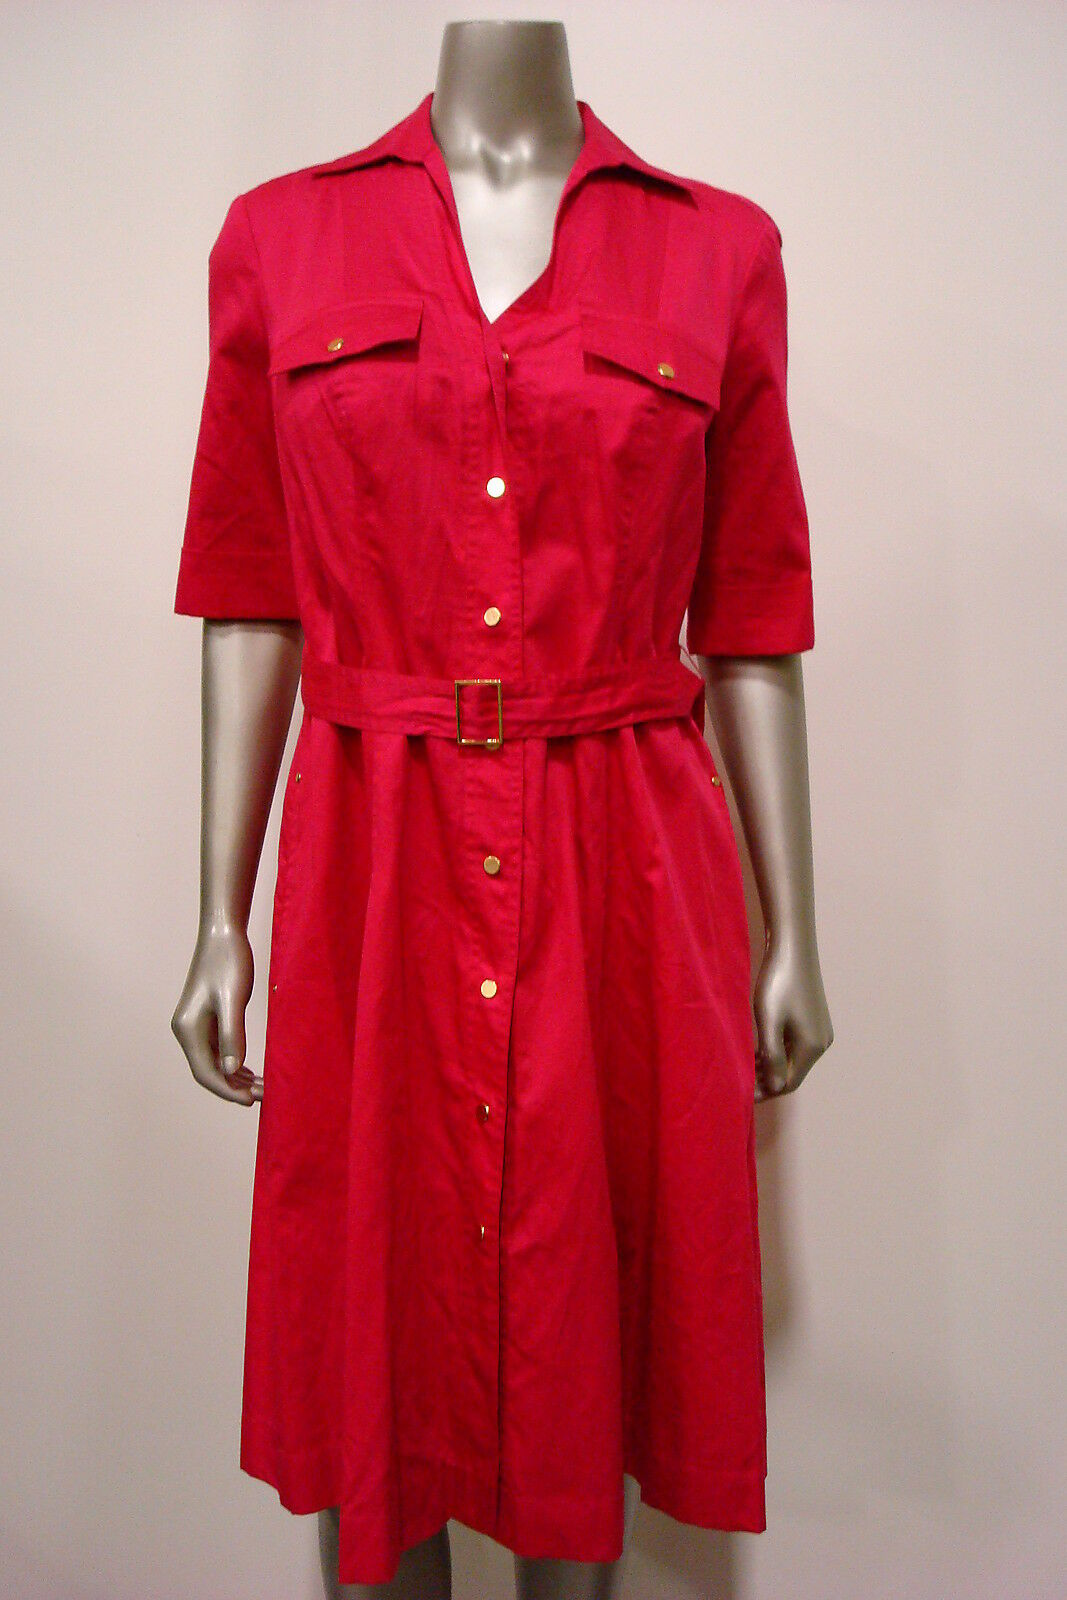 Jones New York Woherren Belted A-Line Button Down Shirt Dress Rosa 8